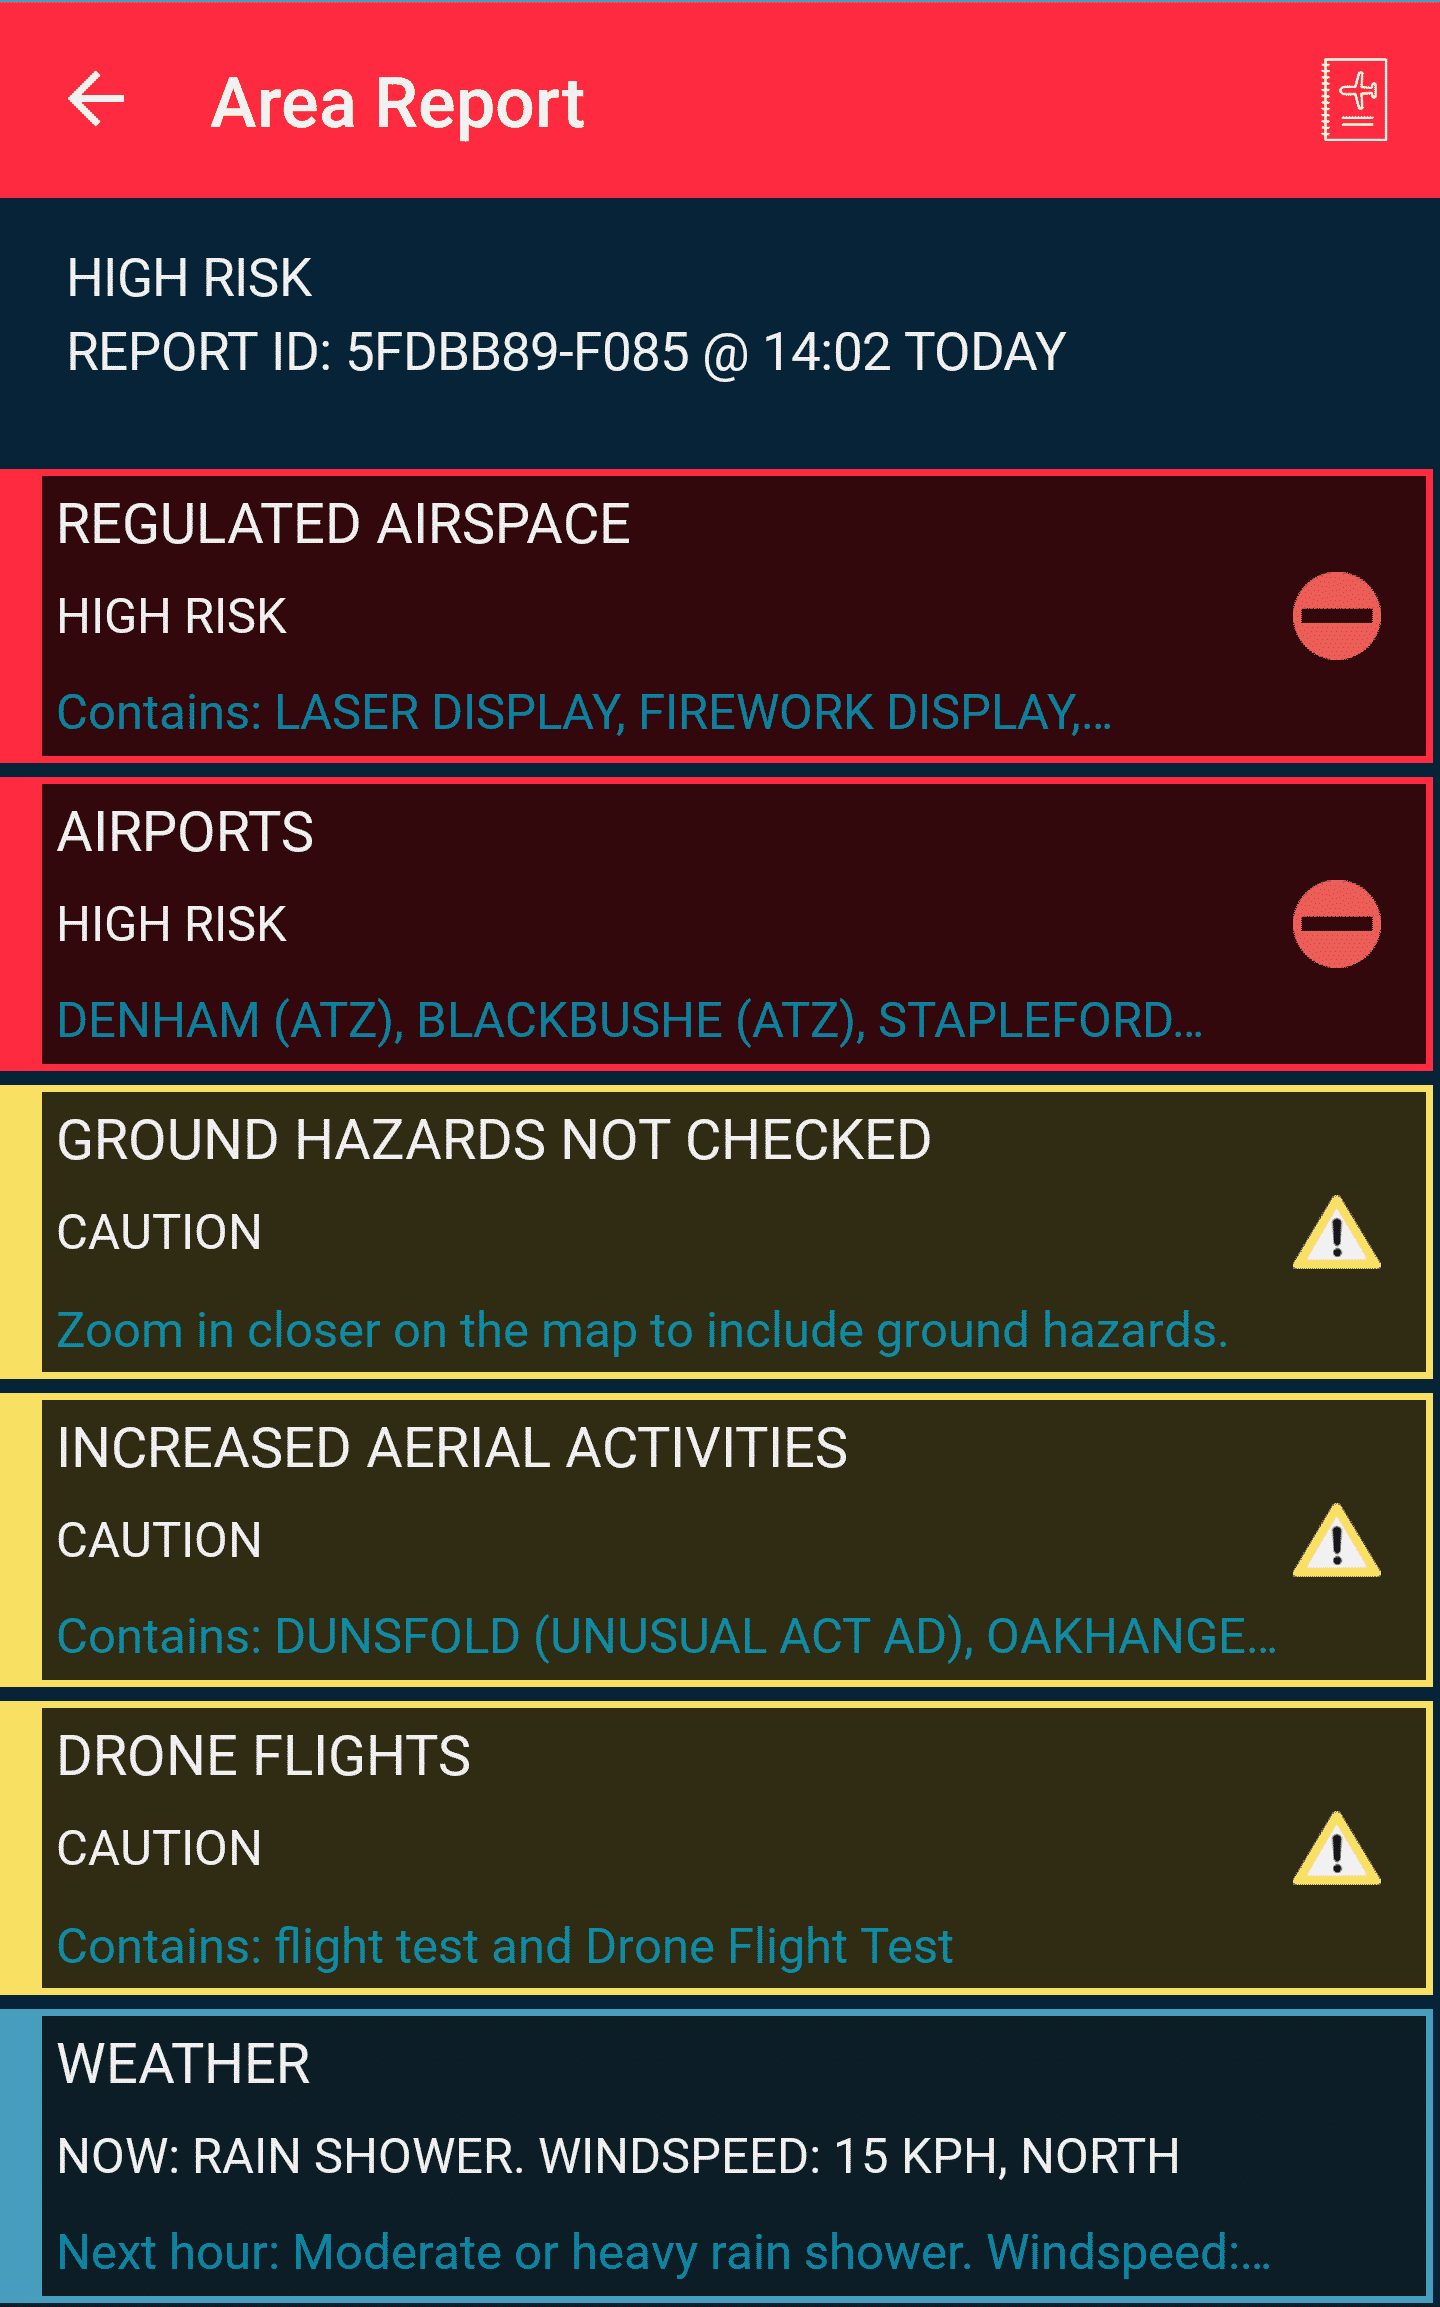 Area Report on Flysafe App